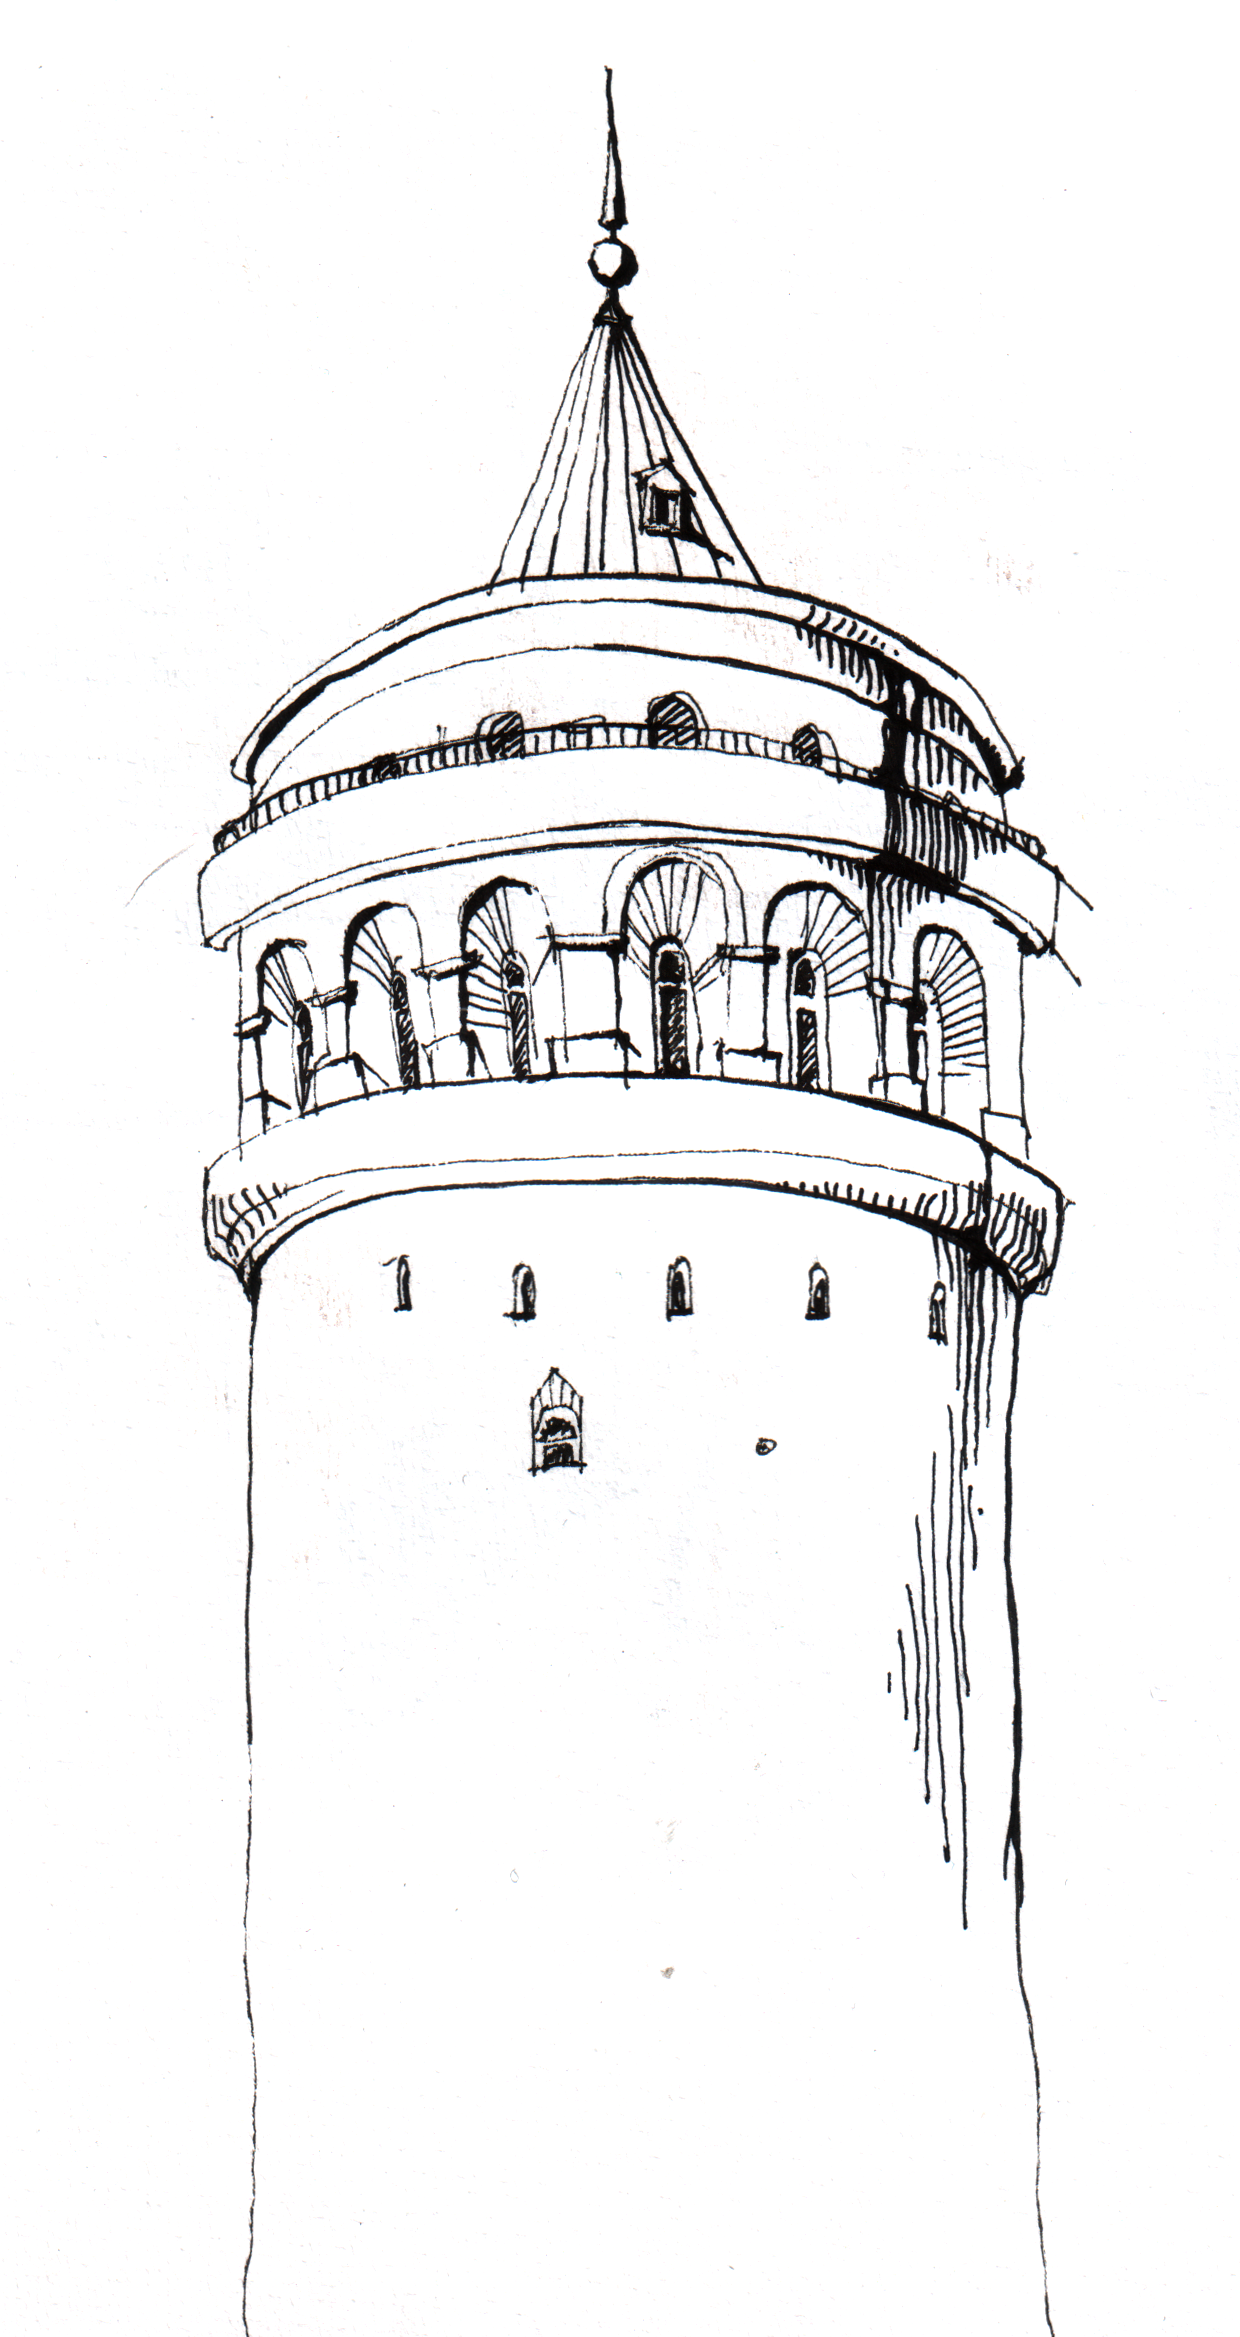 Tablolar galata kulesi duvar posteri pictures to pin on pinterest - Architecture Sketches Tower Istanbul Travel Brochure Calligraphy Sketch Drawing Ideas Pens